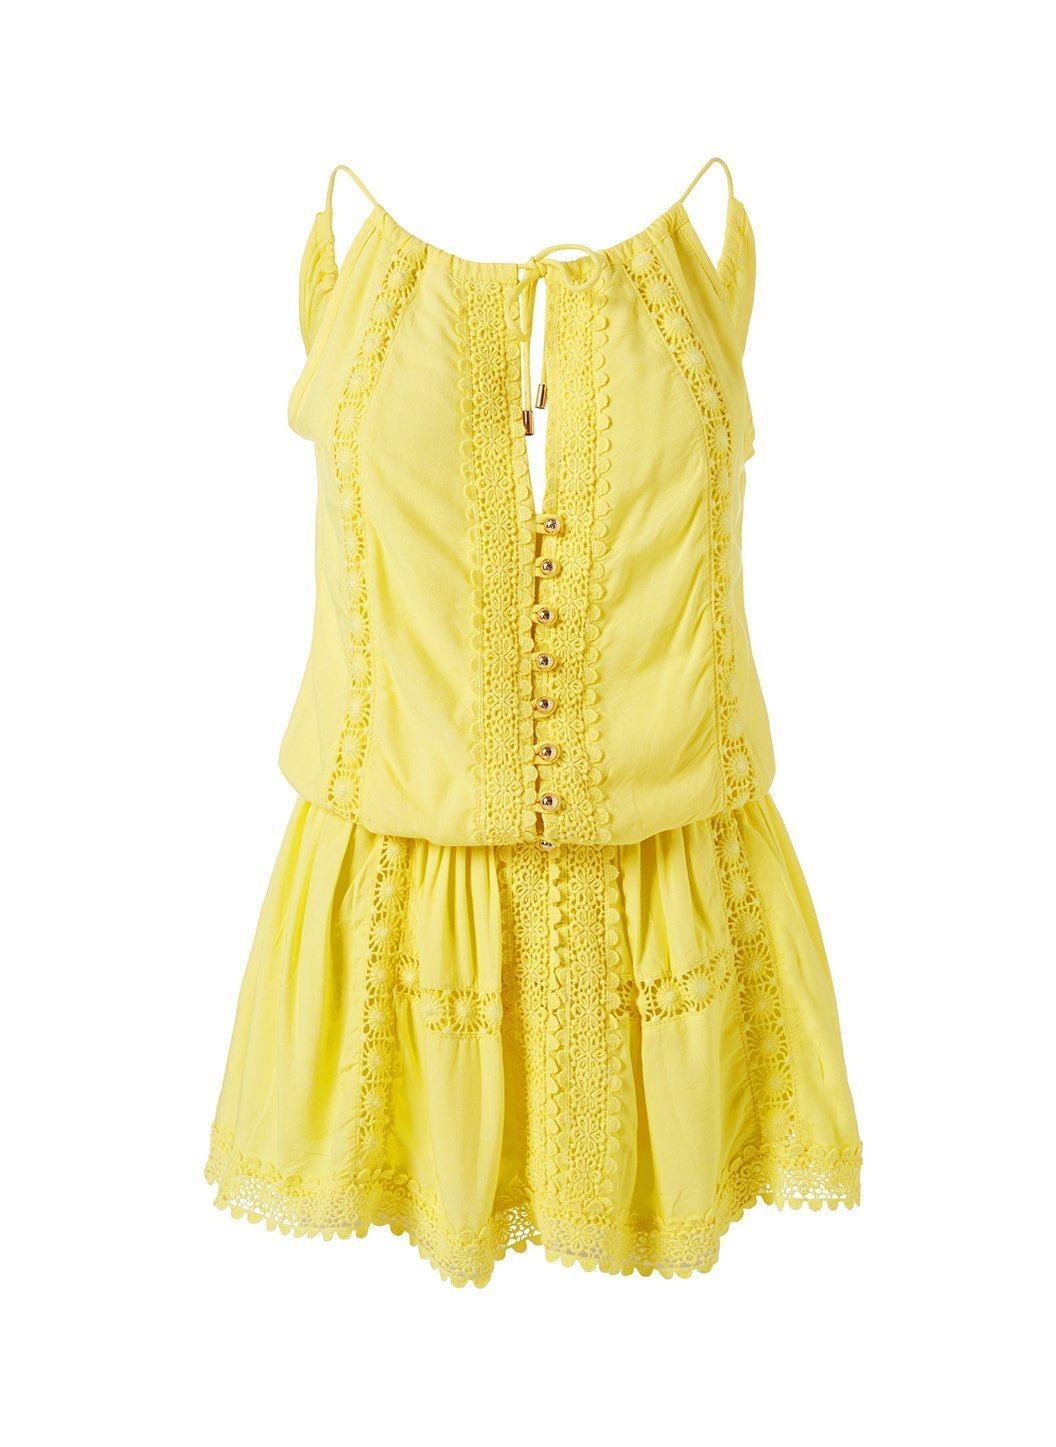 Chelsea Lemon Dress Cutout